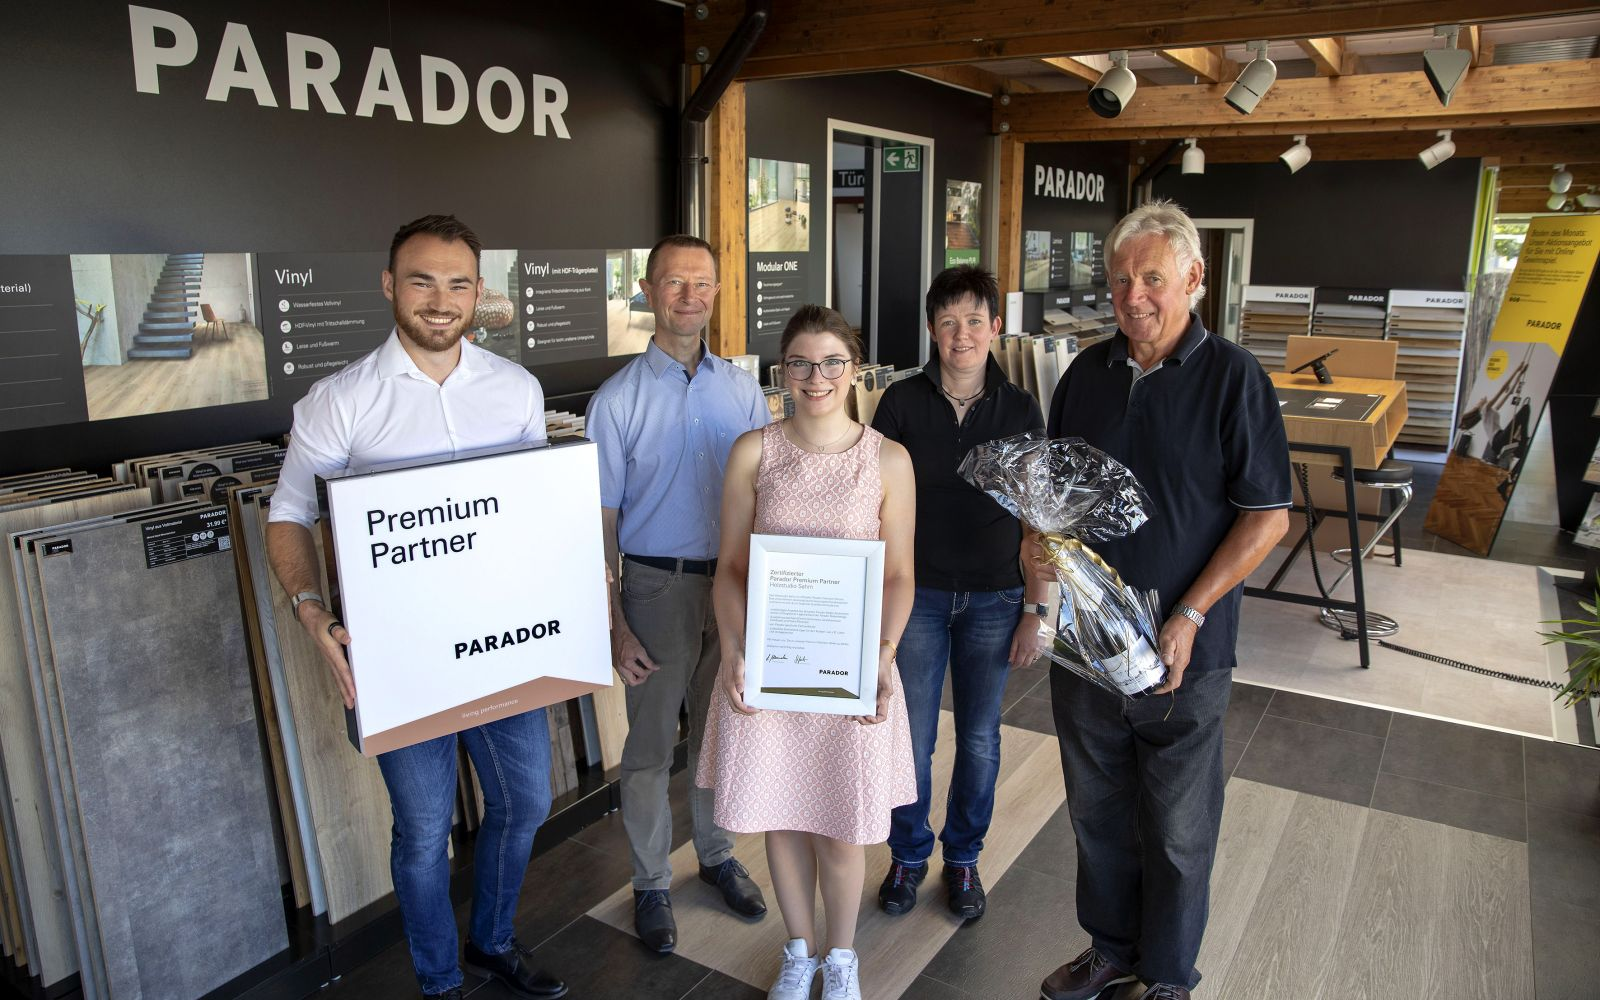 Parador Premiumpartner